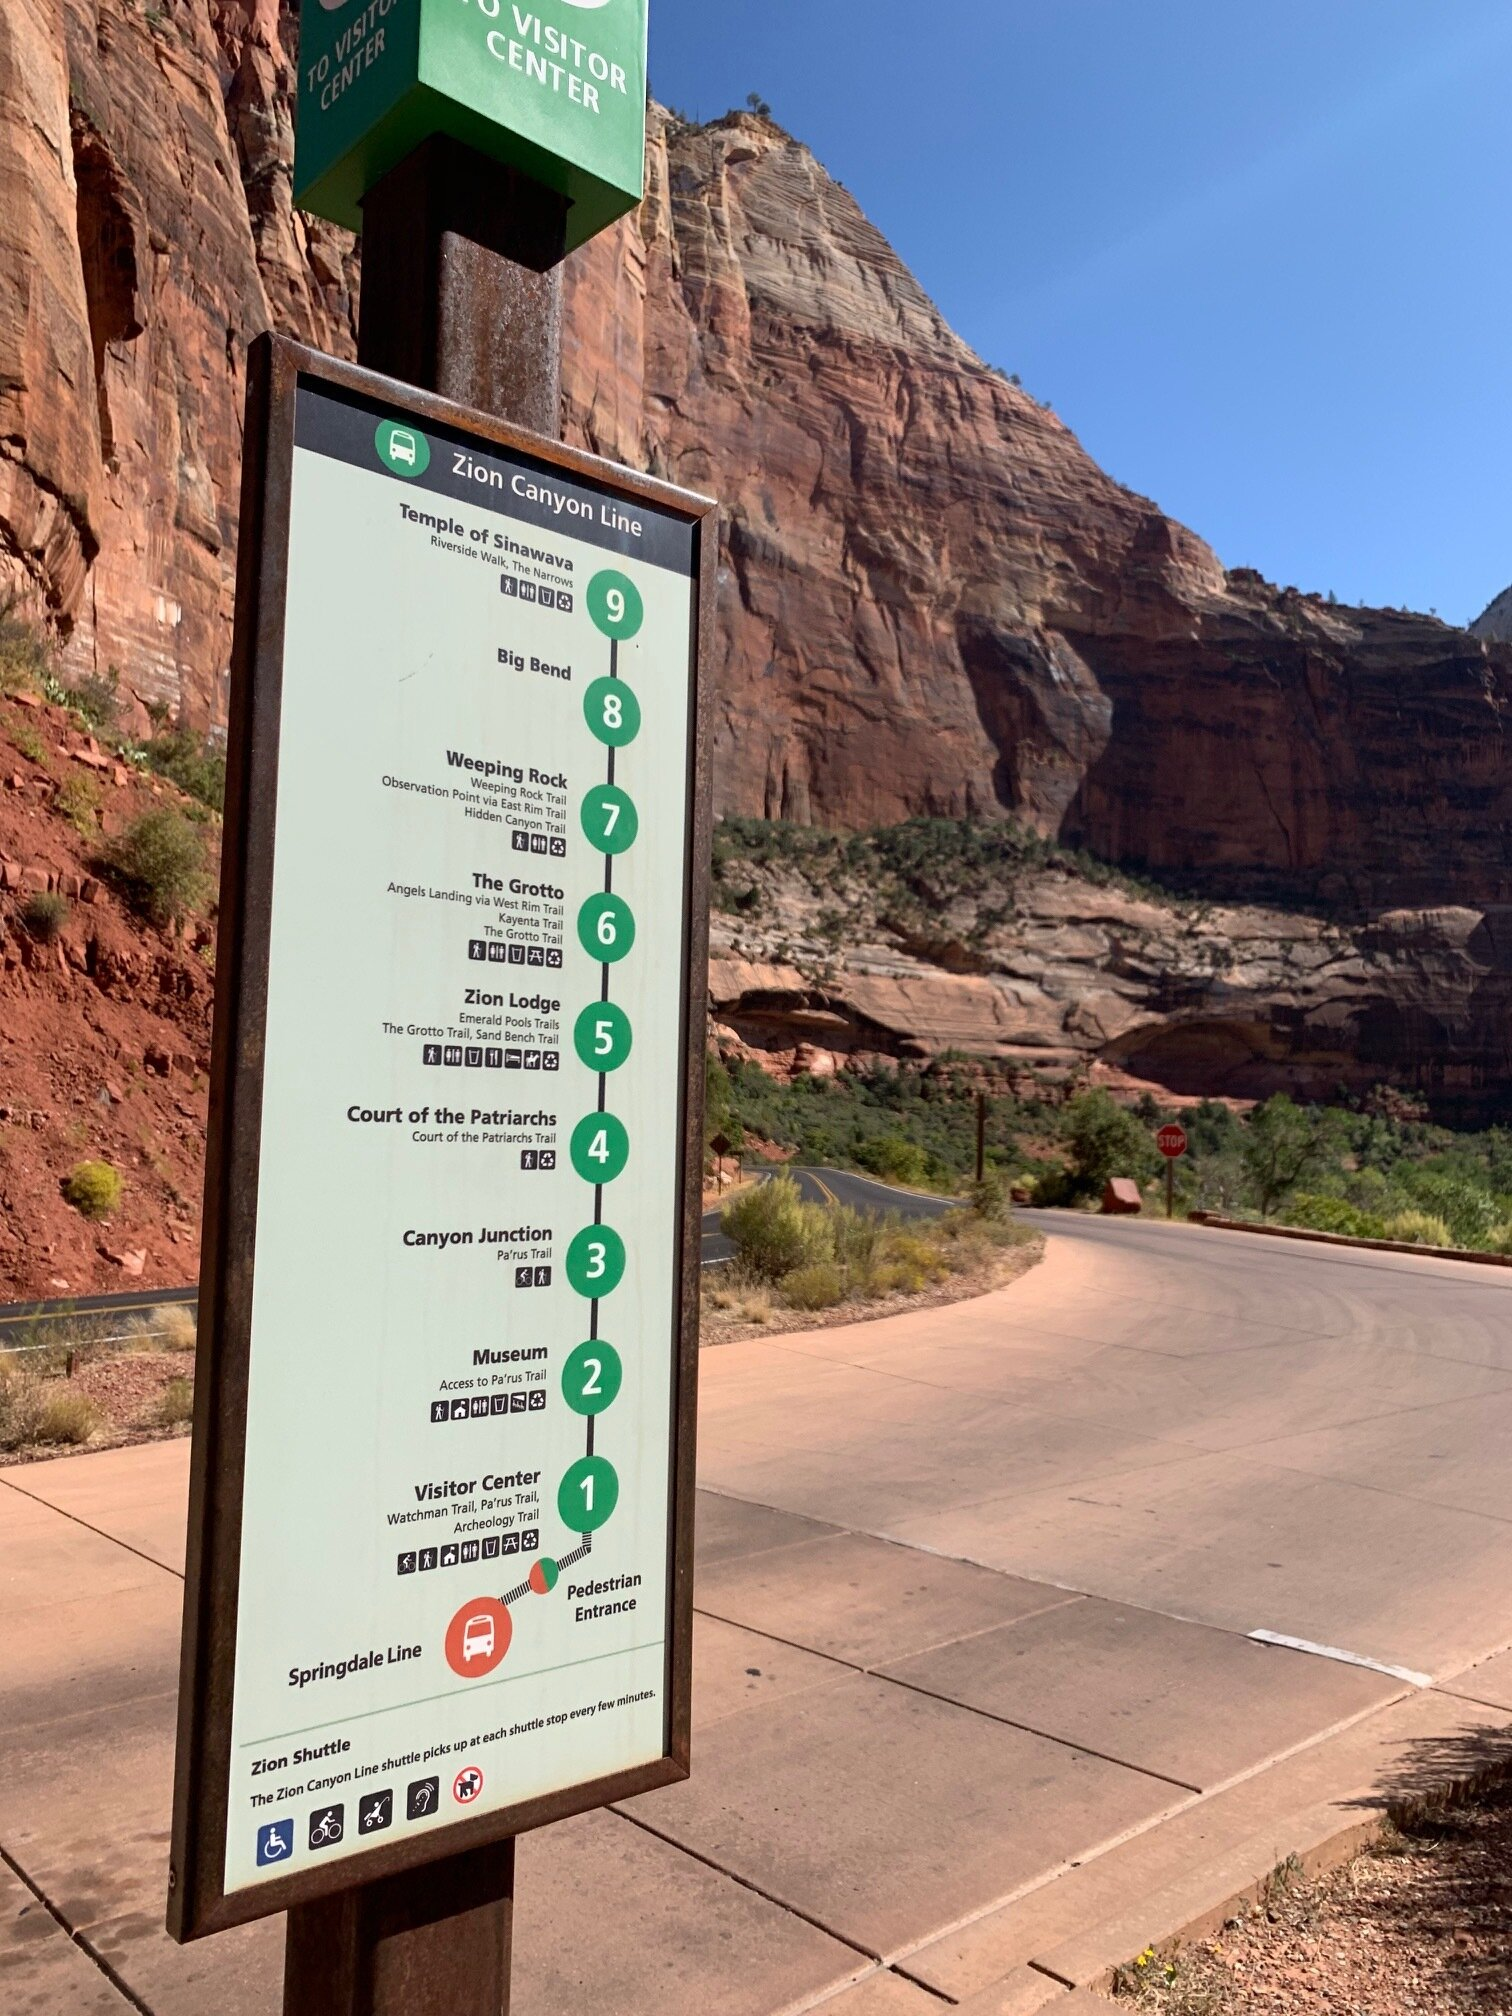 The free shuttle map in Zion National Park.